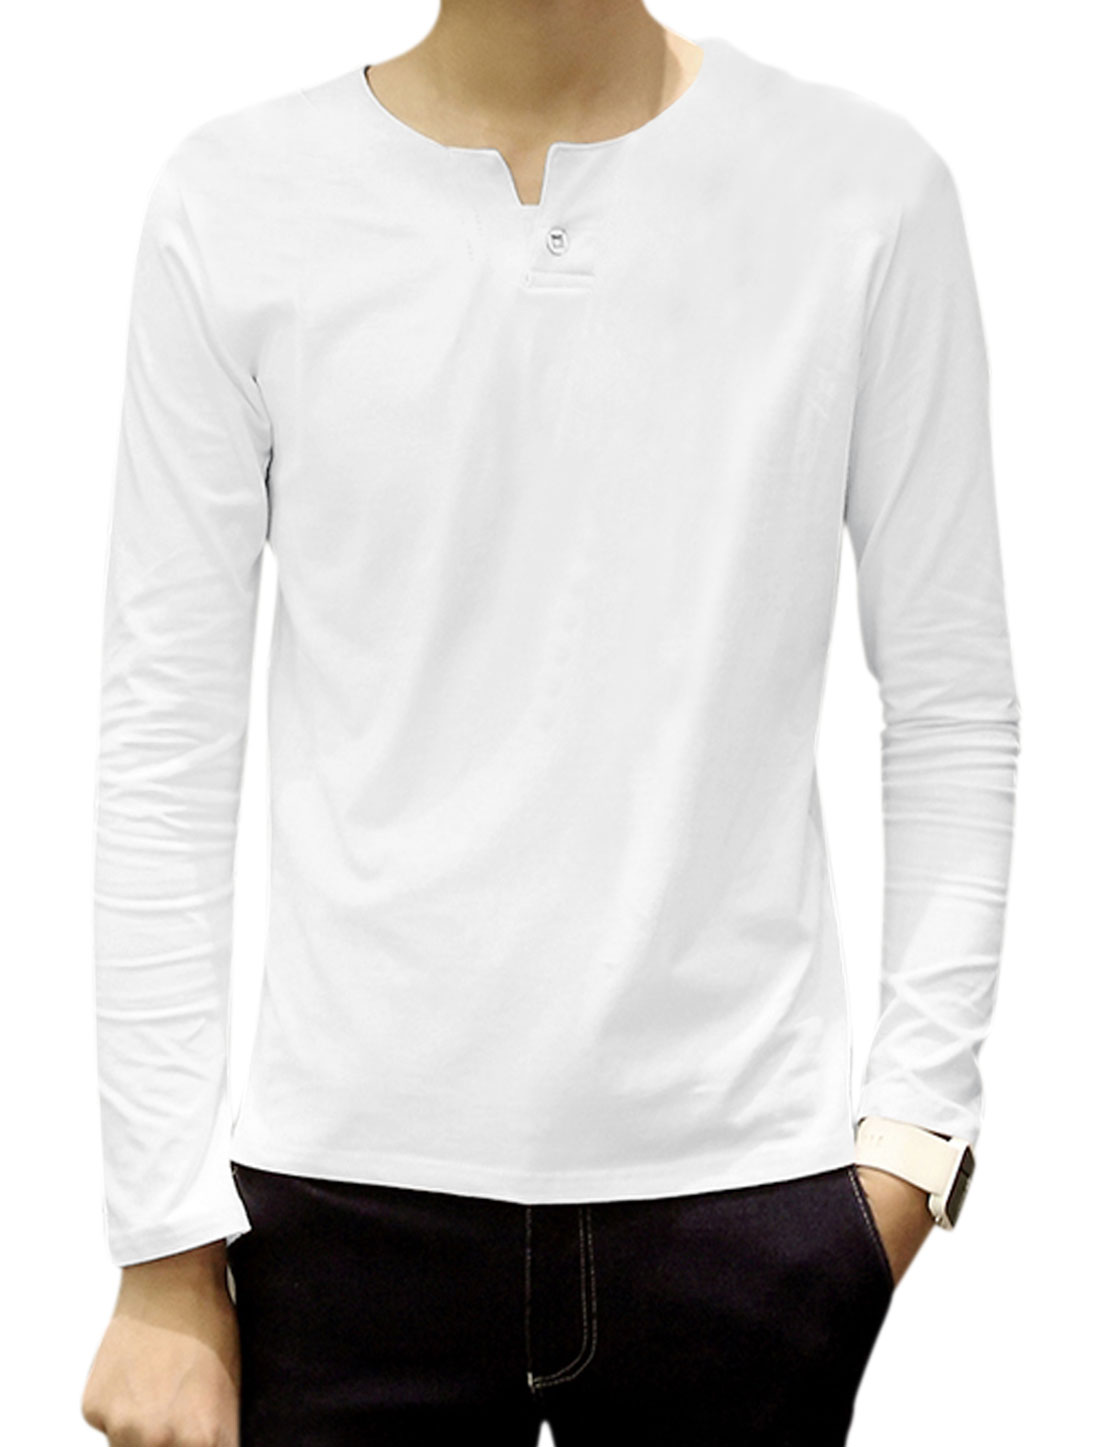 Men Split Neck Long Sleeves Button Upper Tee Shirt White M